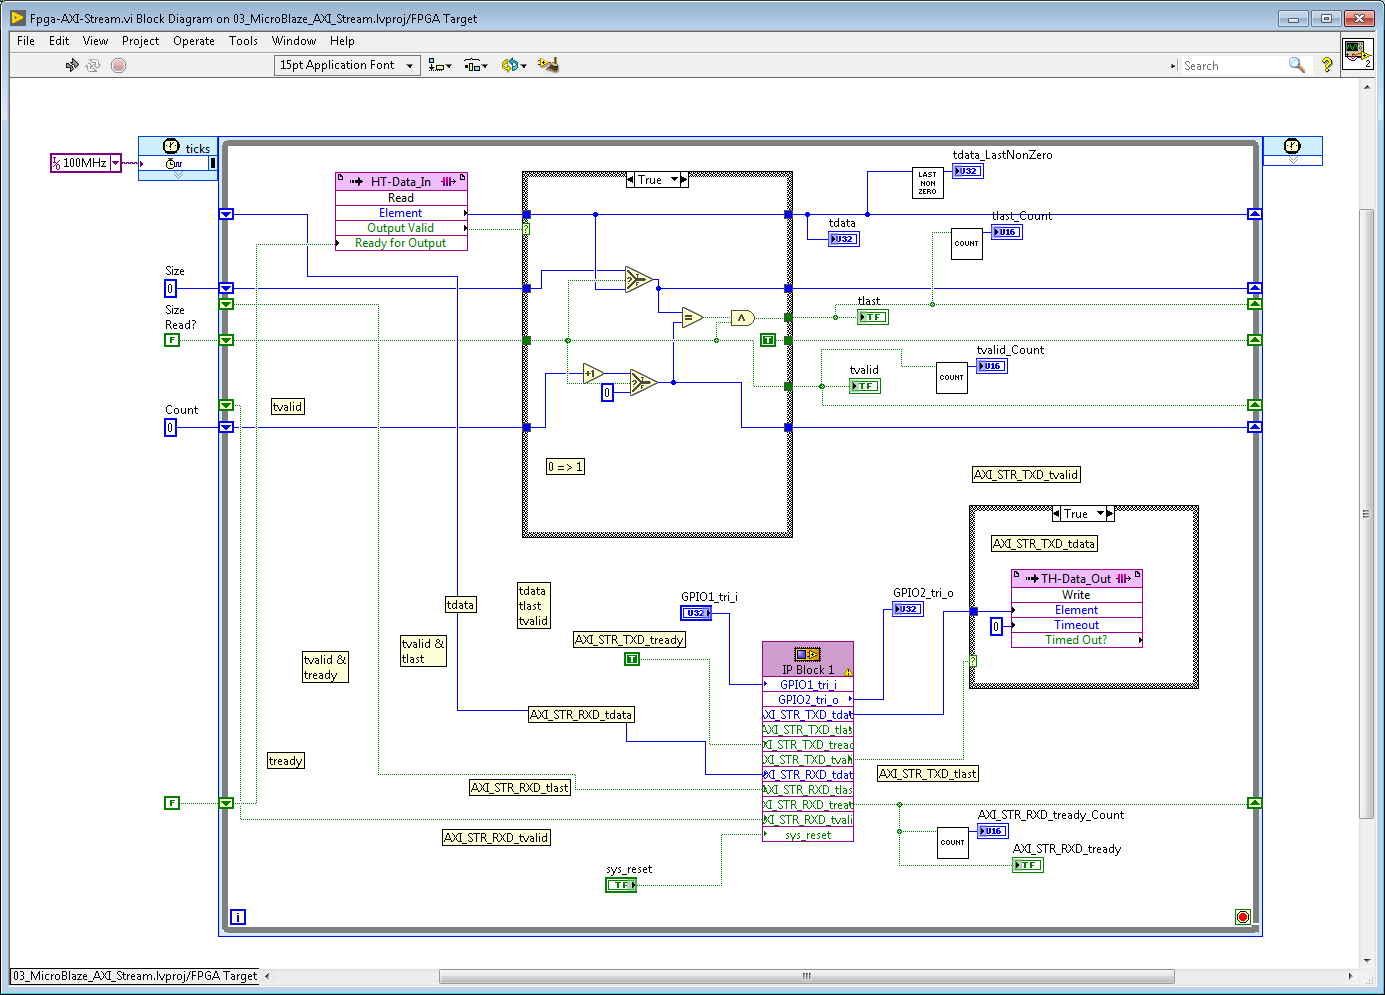 And finally, what it looks like without an IP Integration node, but with a  CLIP (Component Level-IP):